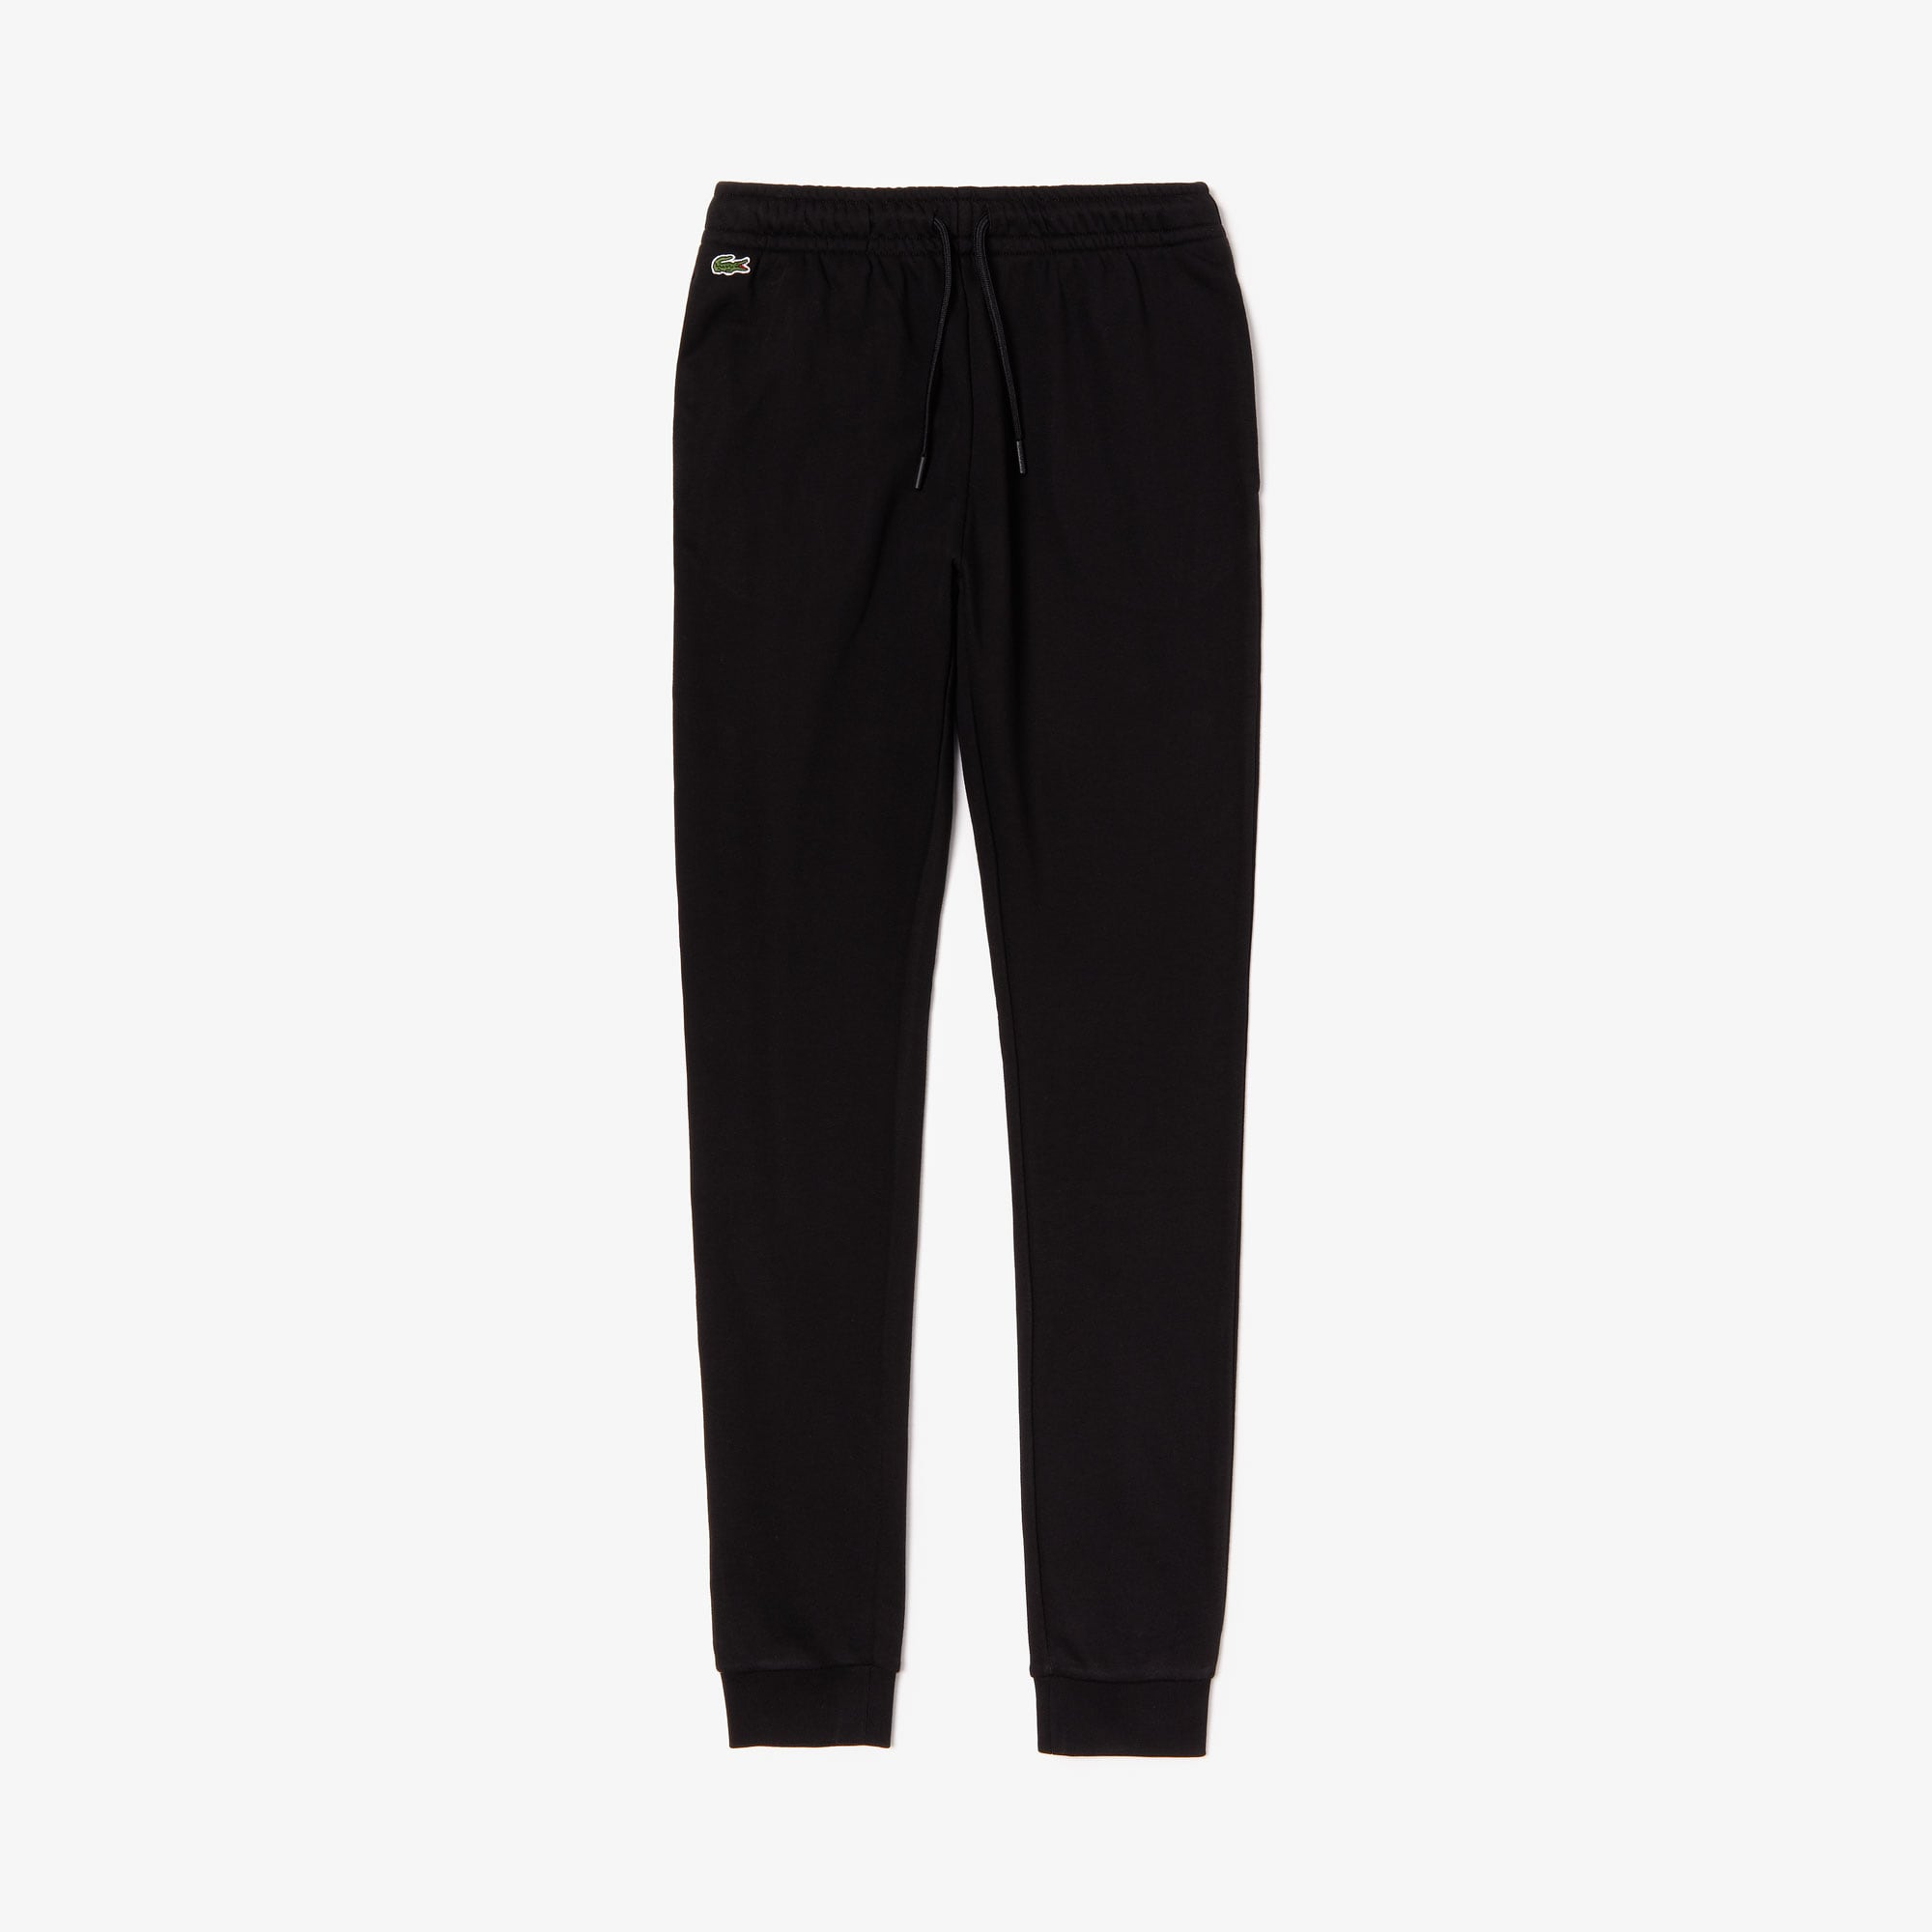 b0d4a3bef5ab2f All Track Pants   Sports Clothing   LACOSTE SPORT